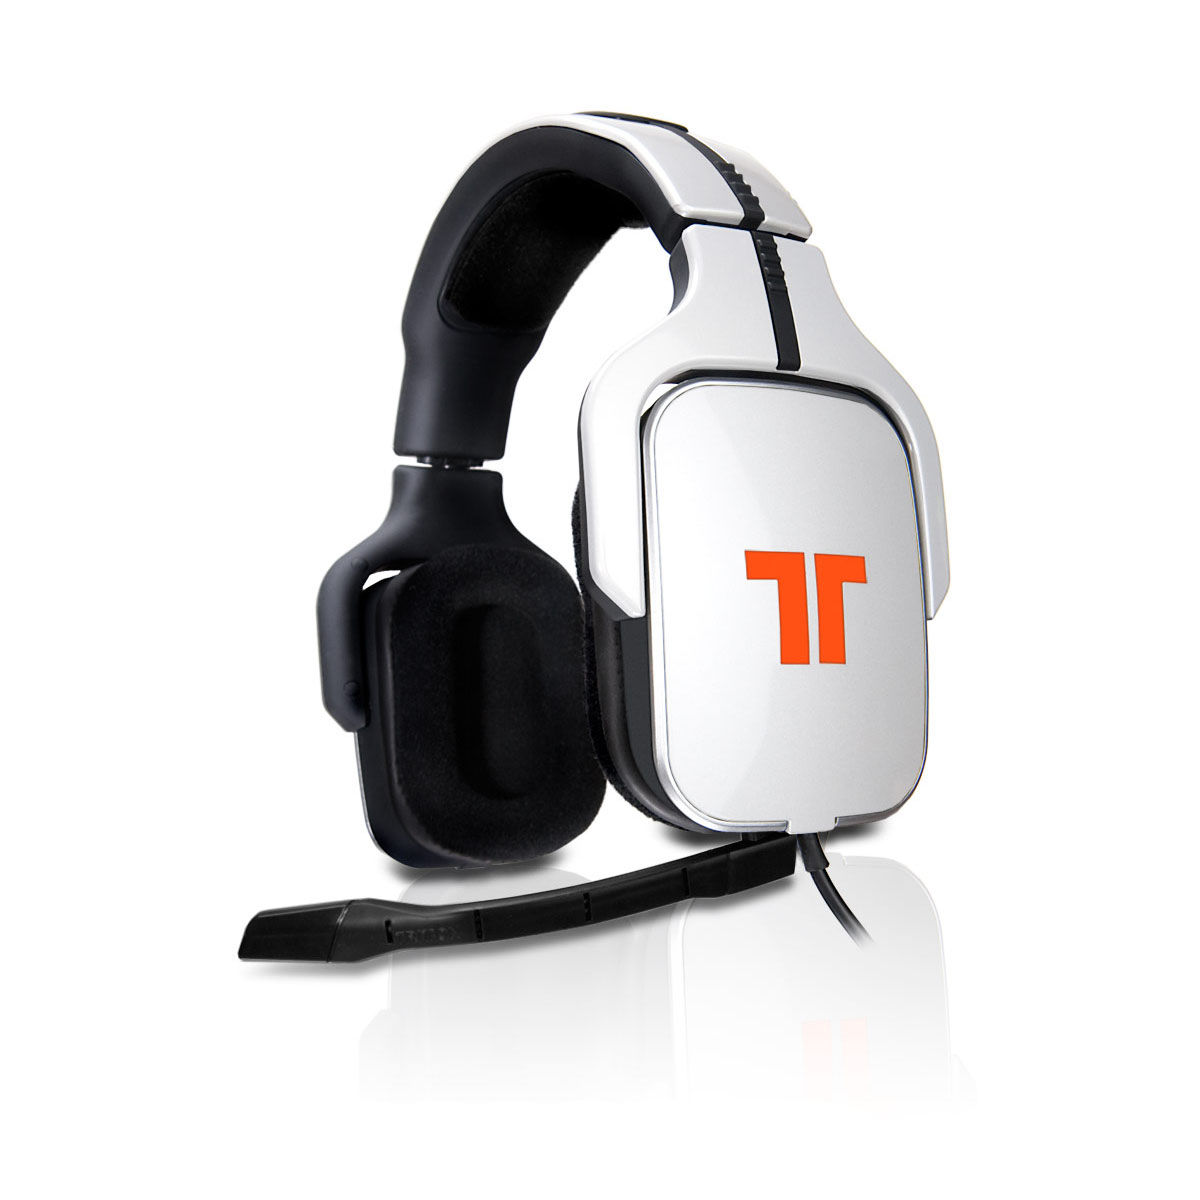 tritton ax 720 pc mac ps3 xbox 360 ax720 achat. Black Bedroom Furniture Sets. Home Design Ideas